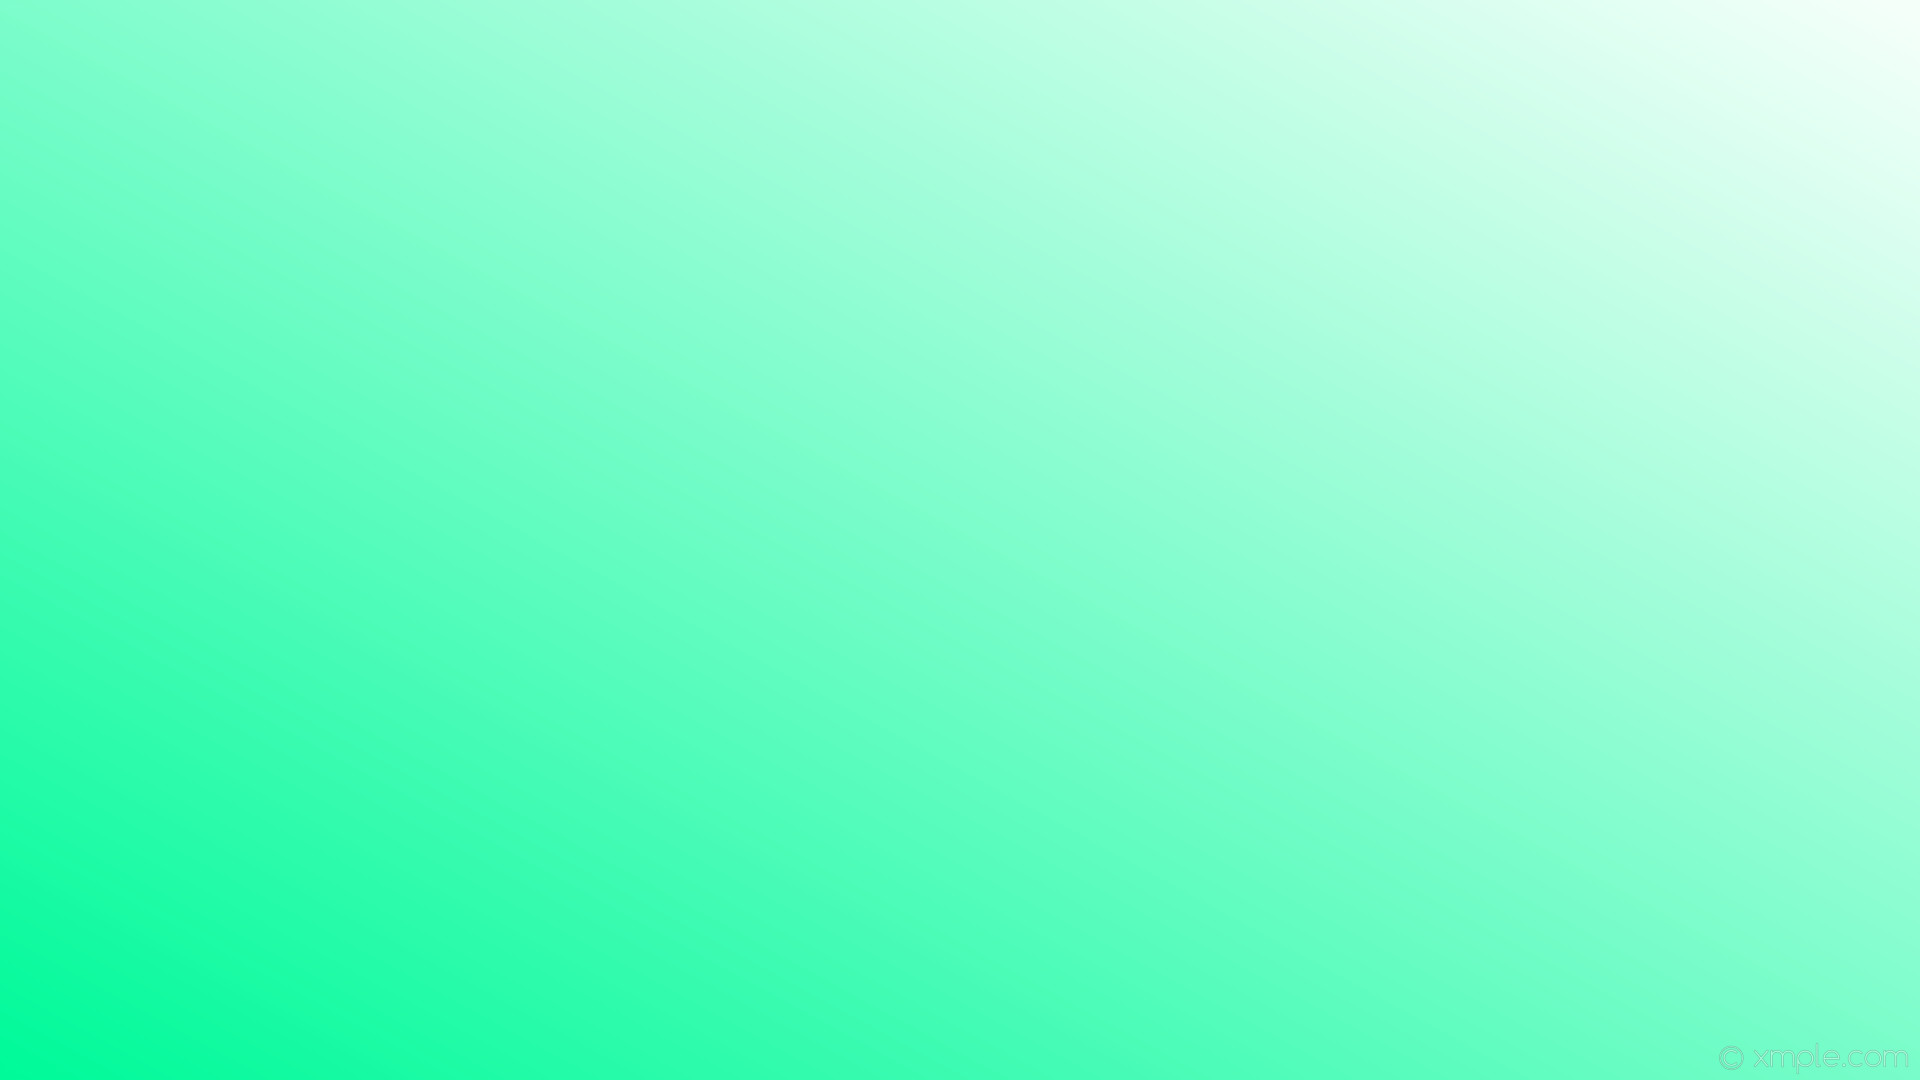 1920x1080 wallpaper green gradient linear white mint cream medium spring green  #f5fffa #00fa9a 30°